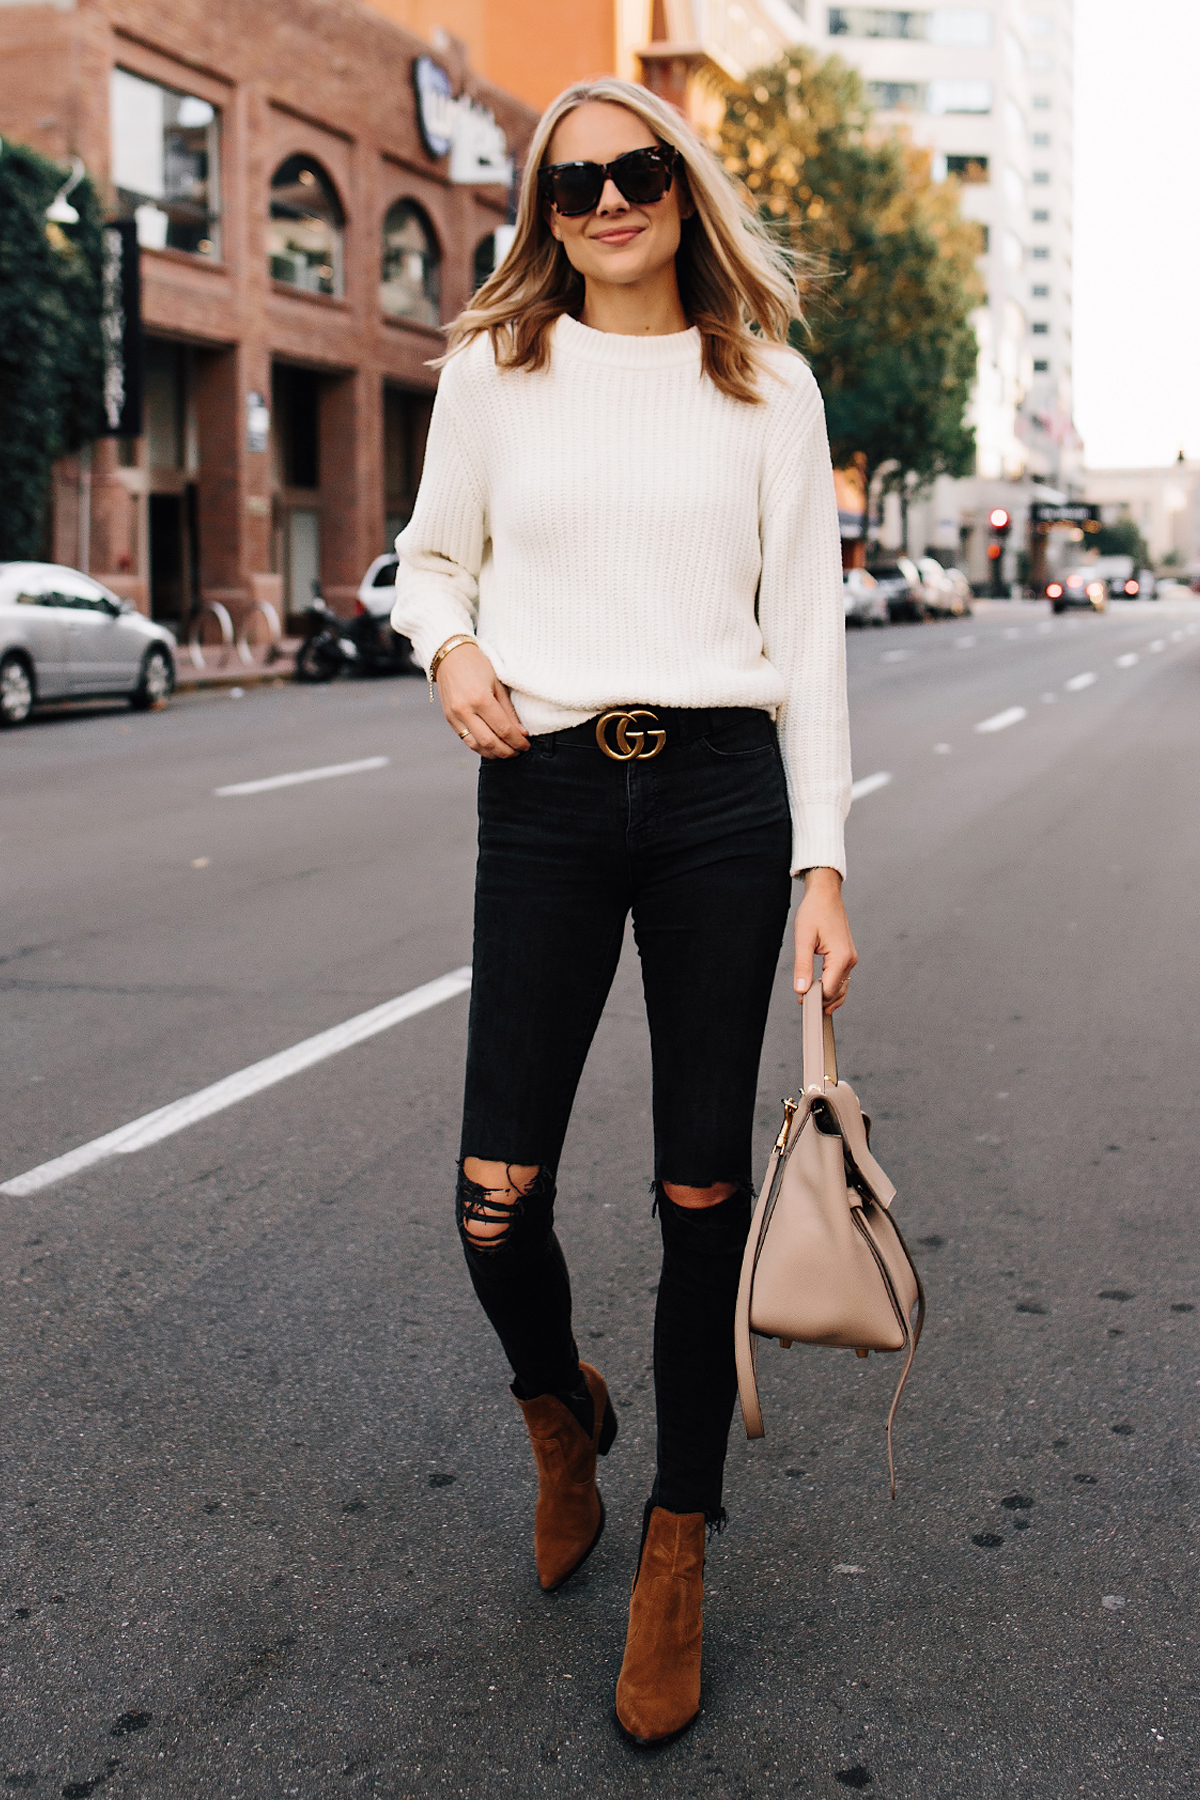 Fashion-Jackson-Ivory-Knit-Sweater-Madewell-Black-Ripped-Jeans-Gucci-Logo-Belt-Steve-Madden-Brown-Chelsea-Booties-Outfit-Celine-Mini-Belt-Bag New